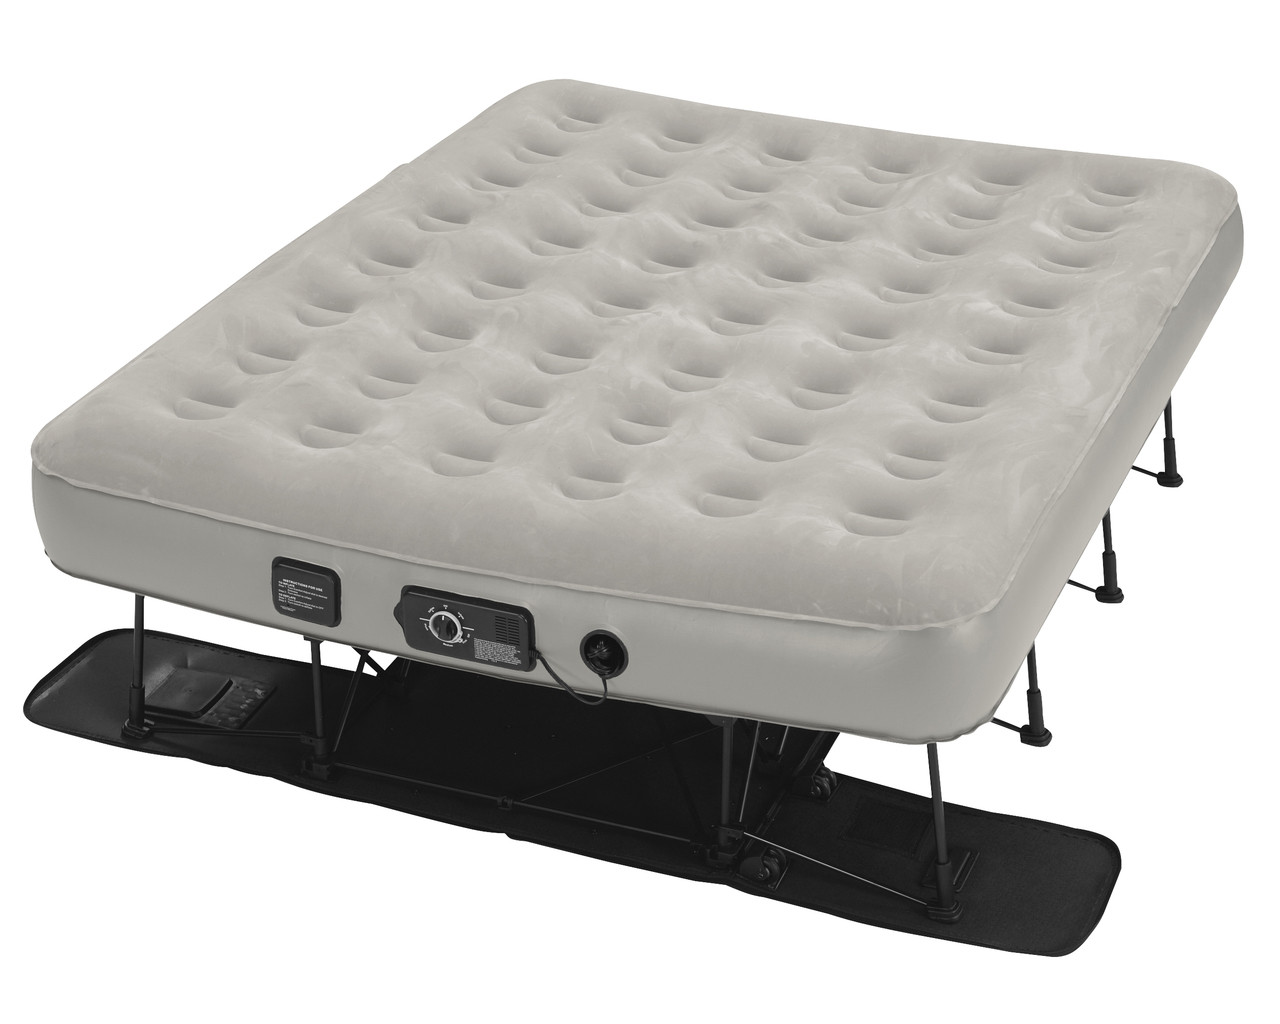 Air bed with frame - Image 1